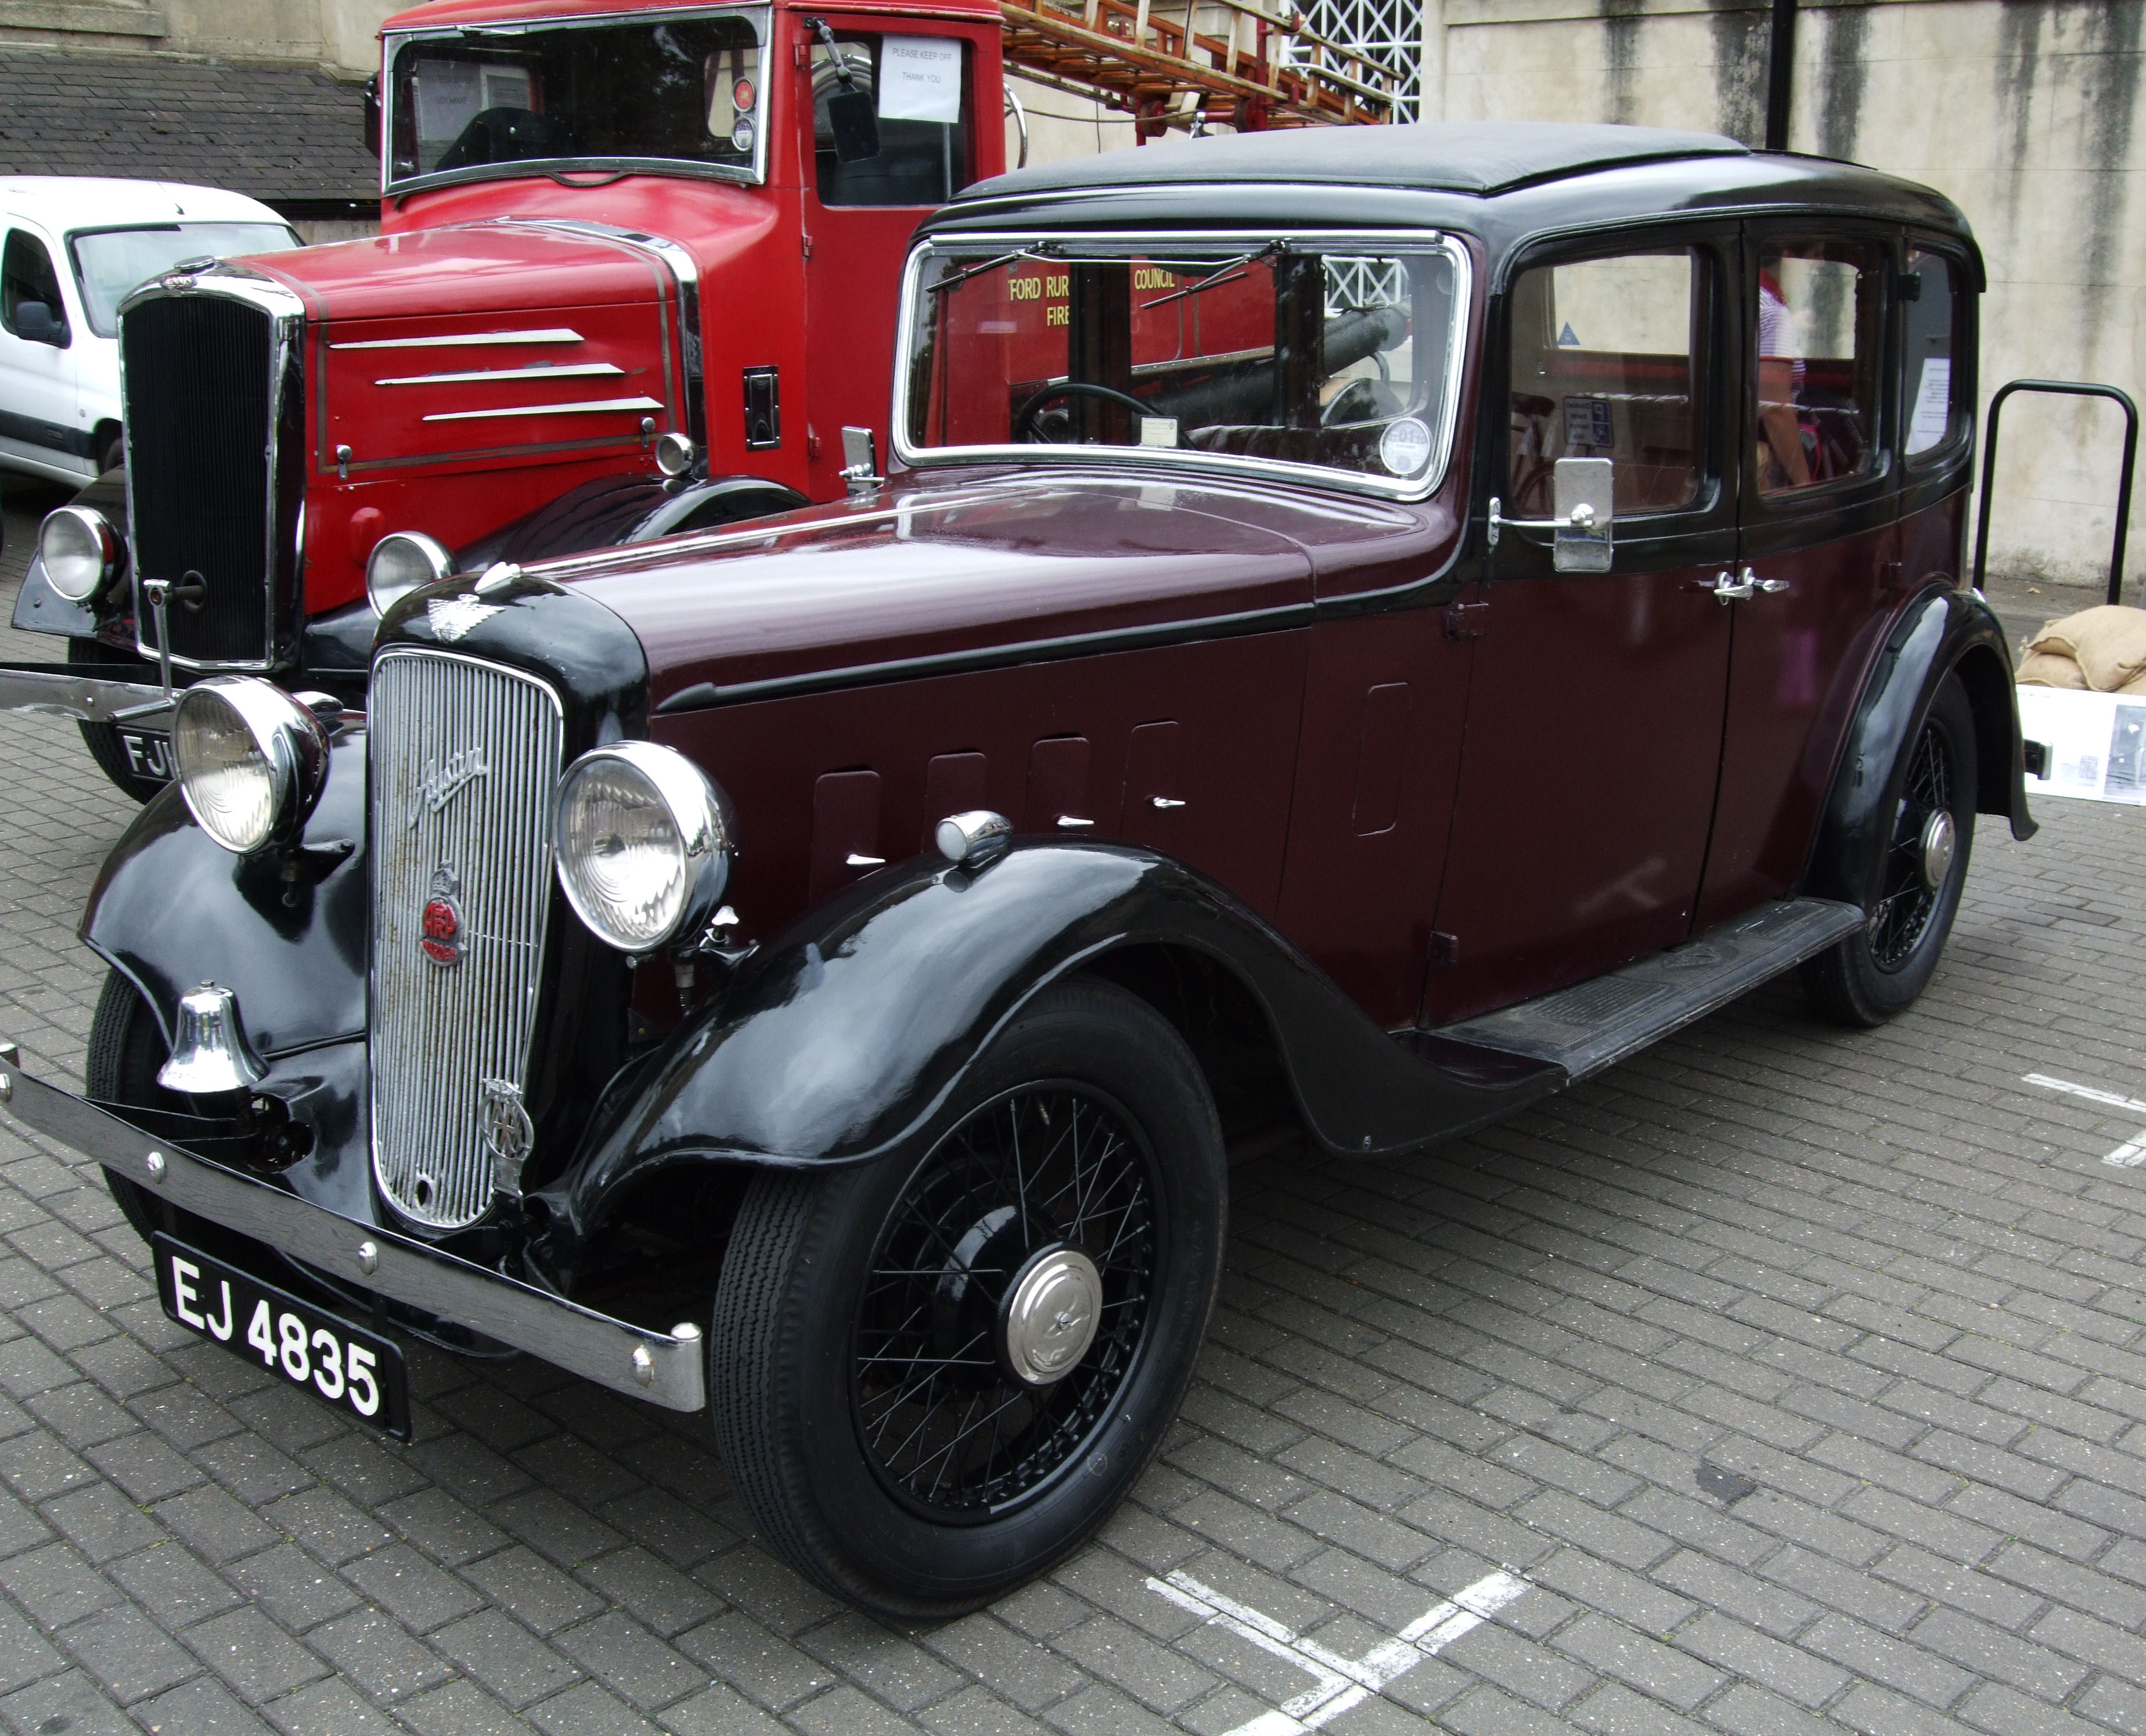 Pictures Of Vintage Cars - Pictures Of Cars 2016